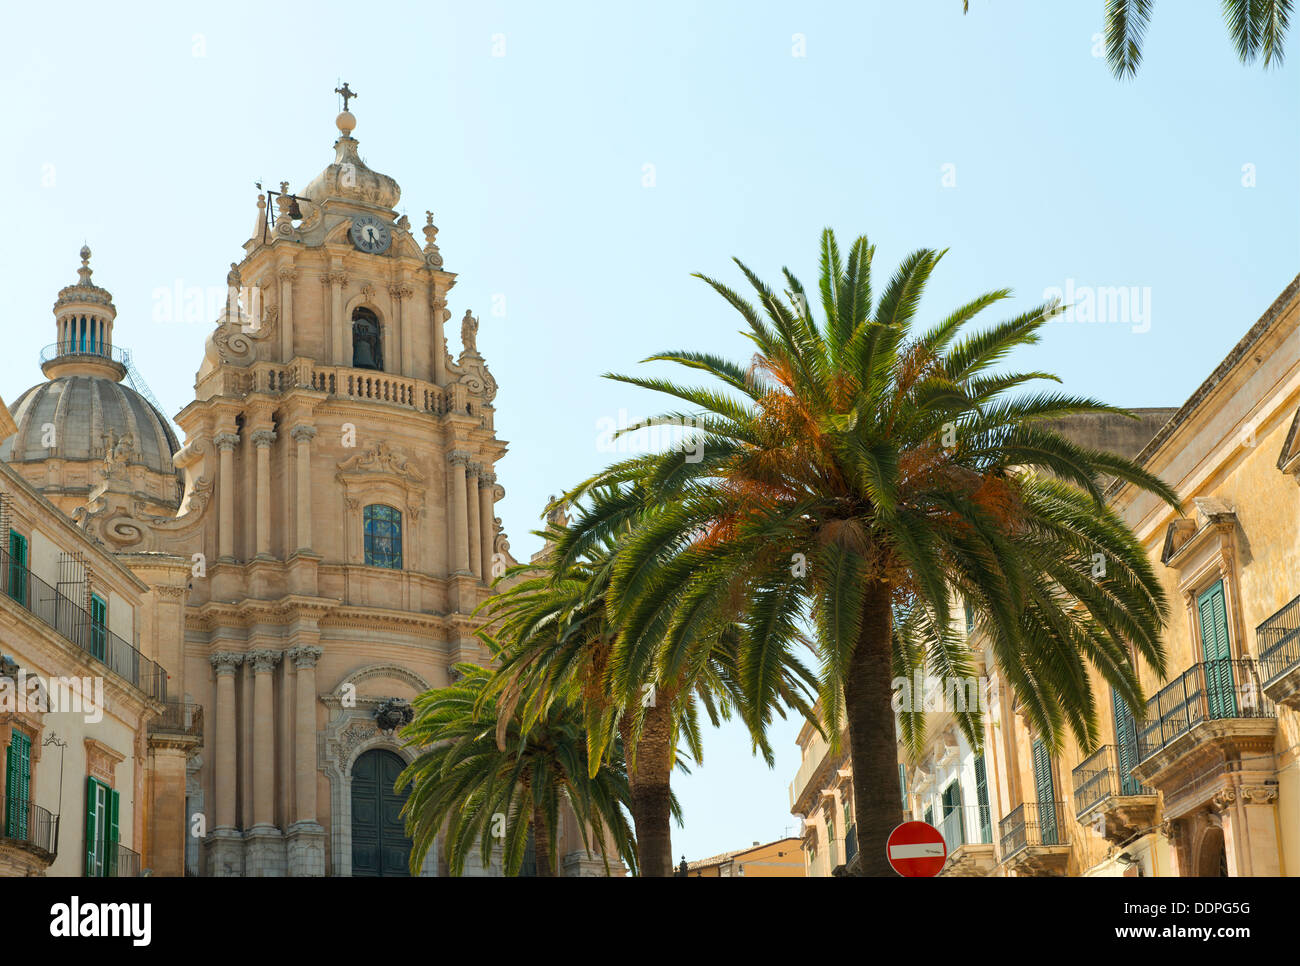 The Sicilian Baroque facade of the Cathedral of San Giorgio in Ragusa Ibla, Syracuse Province, Sicily, Italy - Stock Image